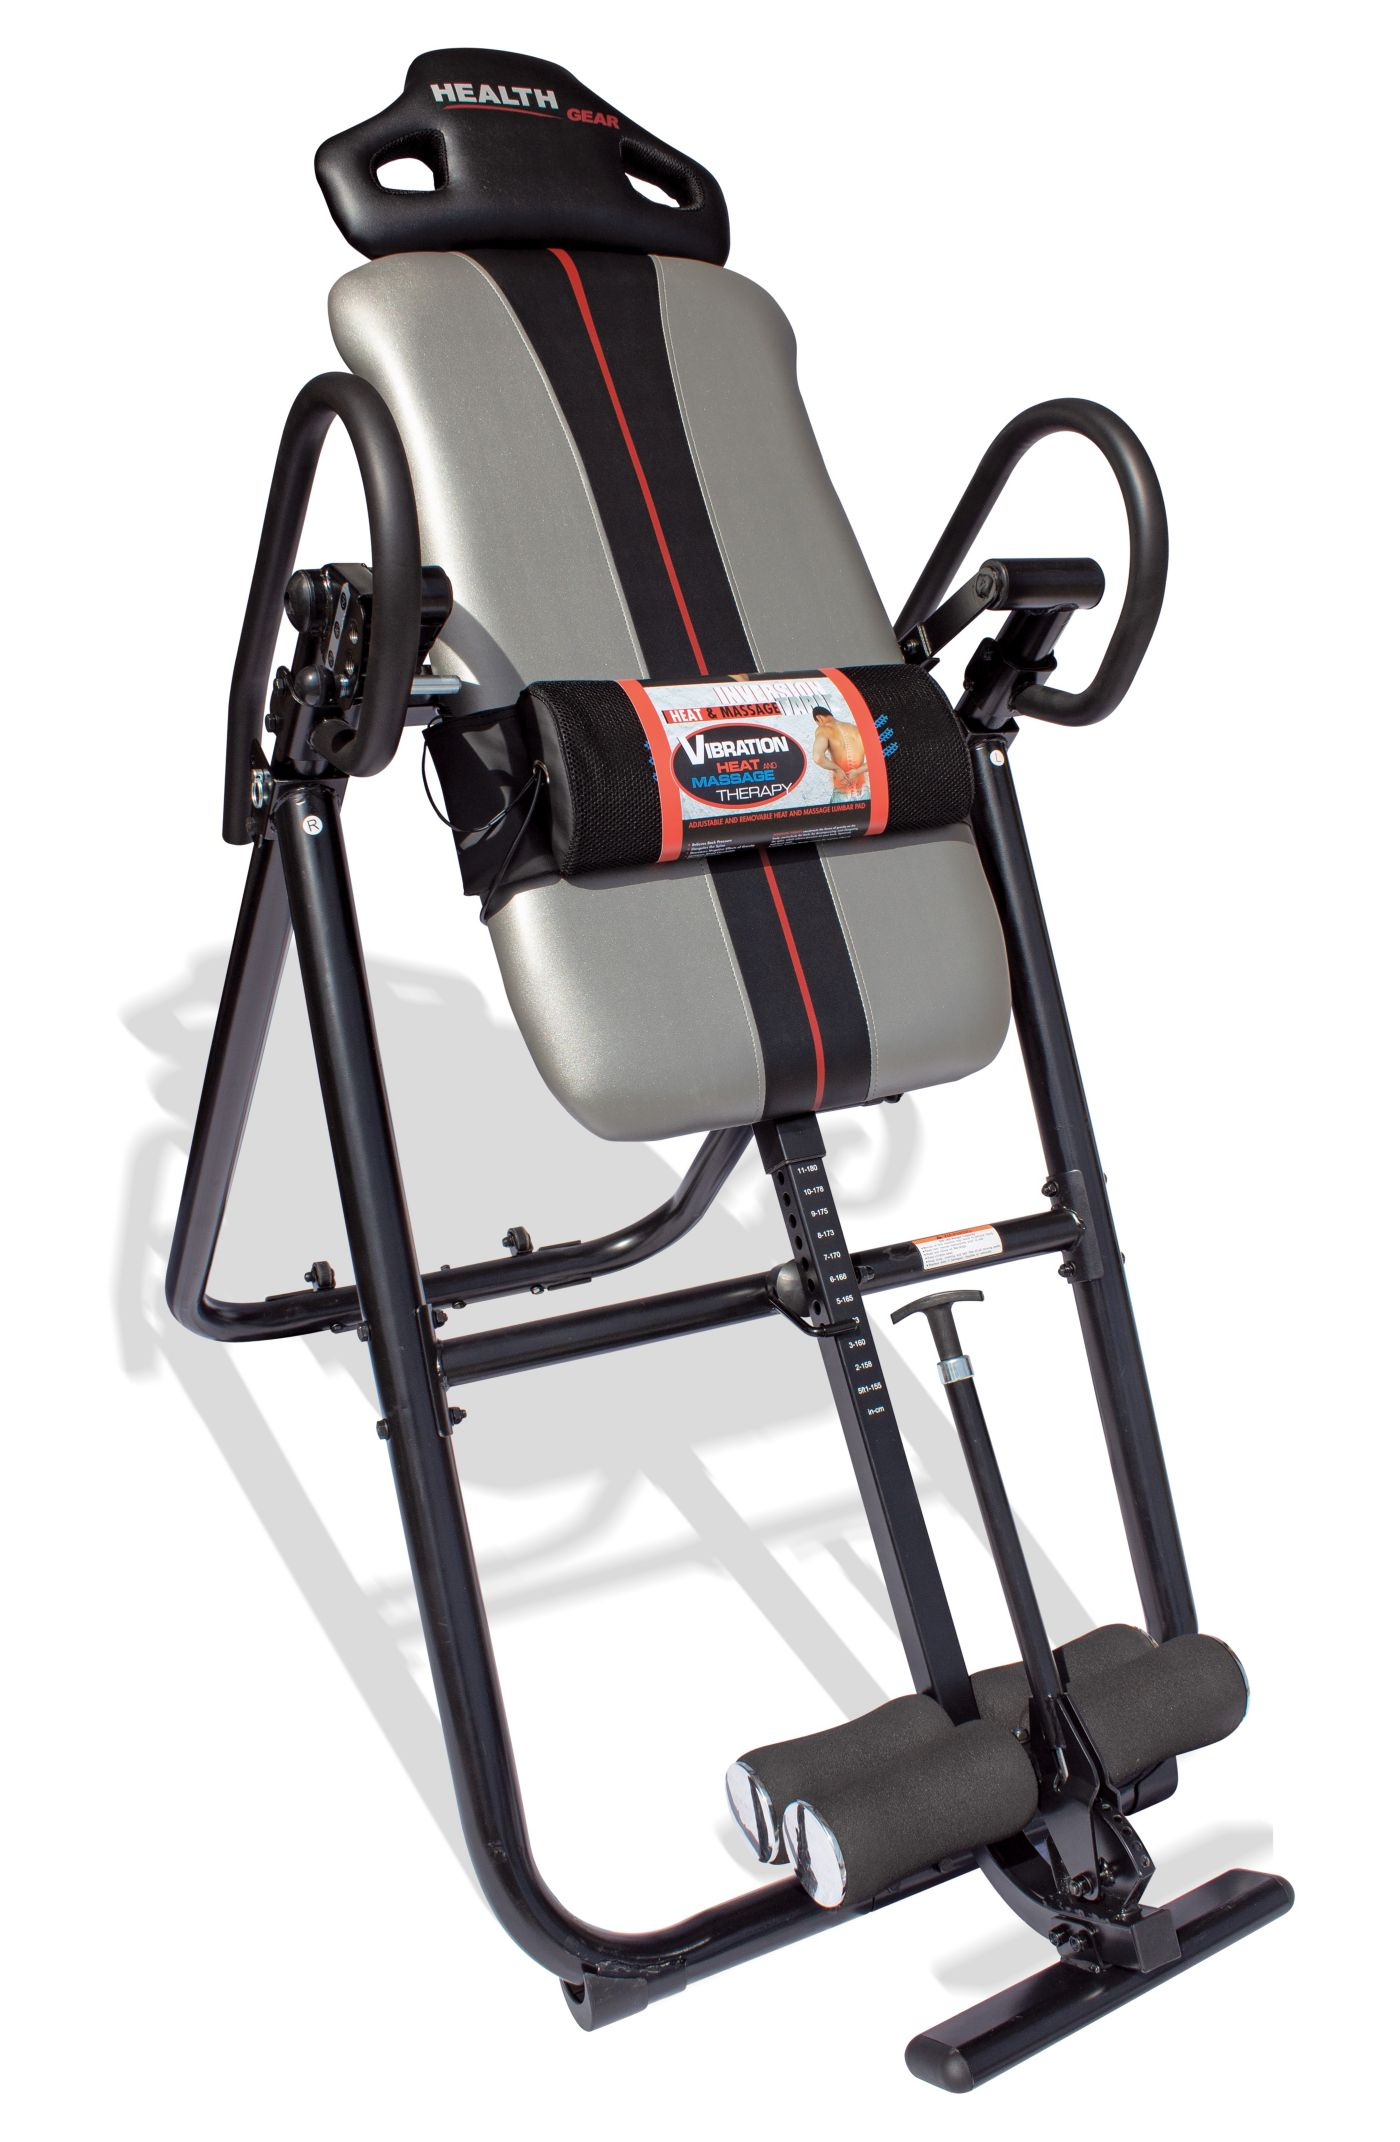 Health Gear Deluxe 4.0 Heat and Massage Inversion Table